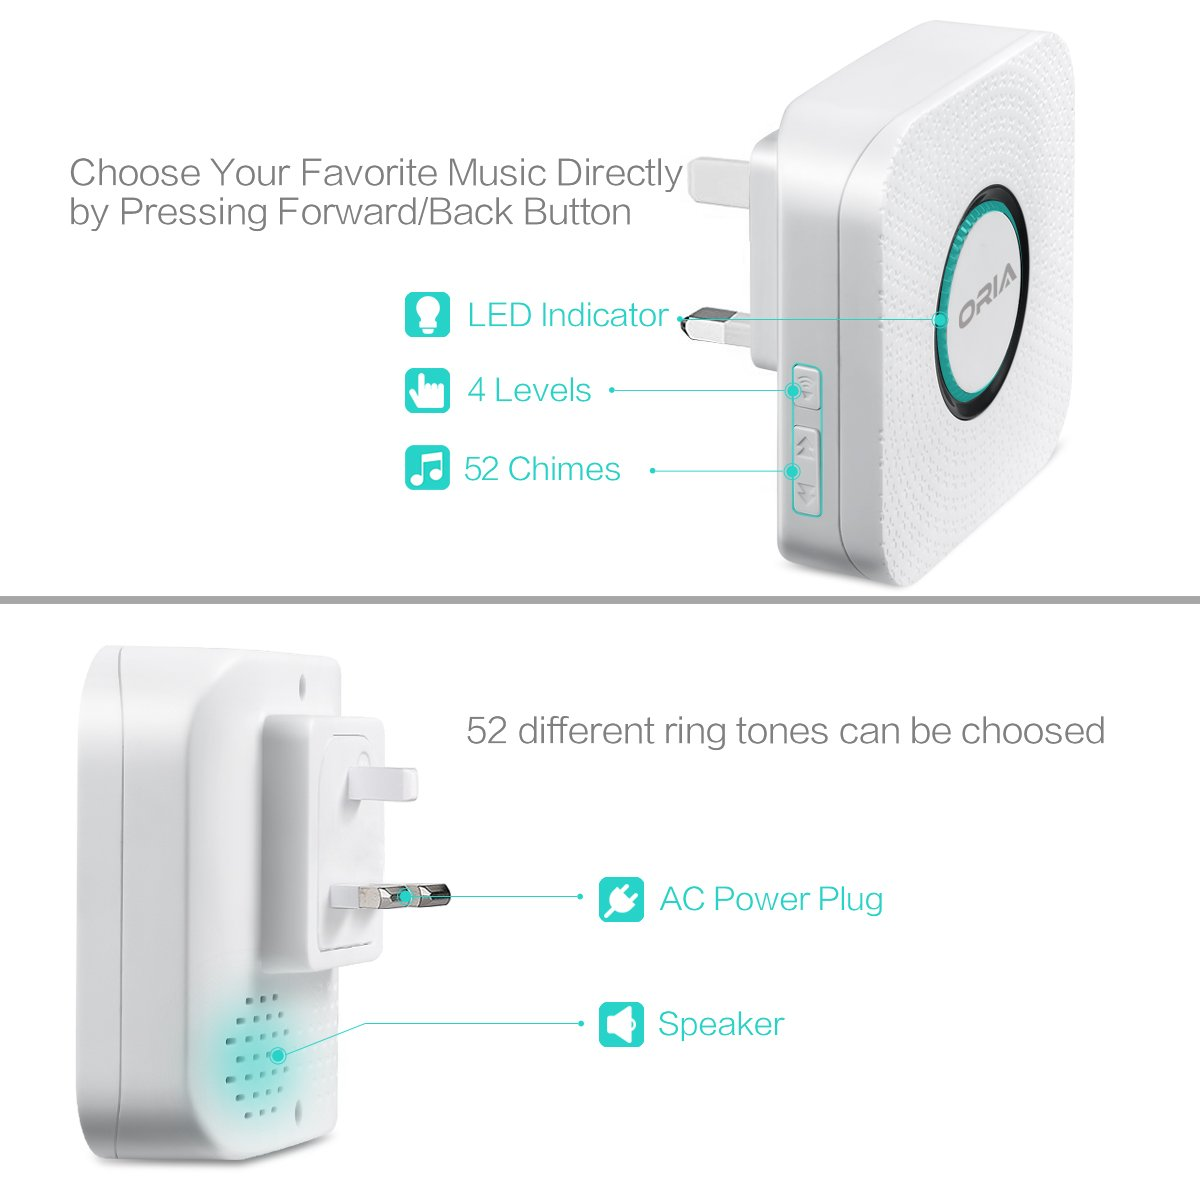 Portable Easy Chime Plug-in Wireless Doorbell Operating over 900 feet(open air), Range with 52 Chimes,CD Quality Sound and LED Flash.No Batteries Required by AMIR (Image #3)